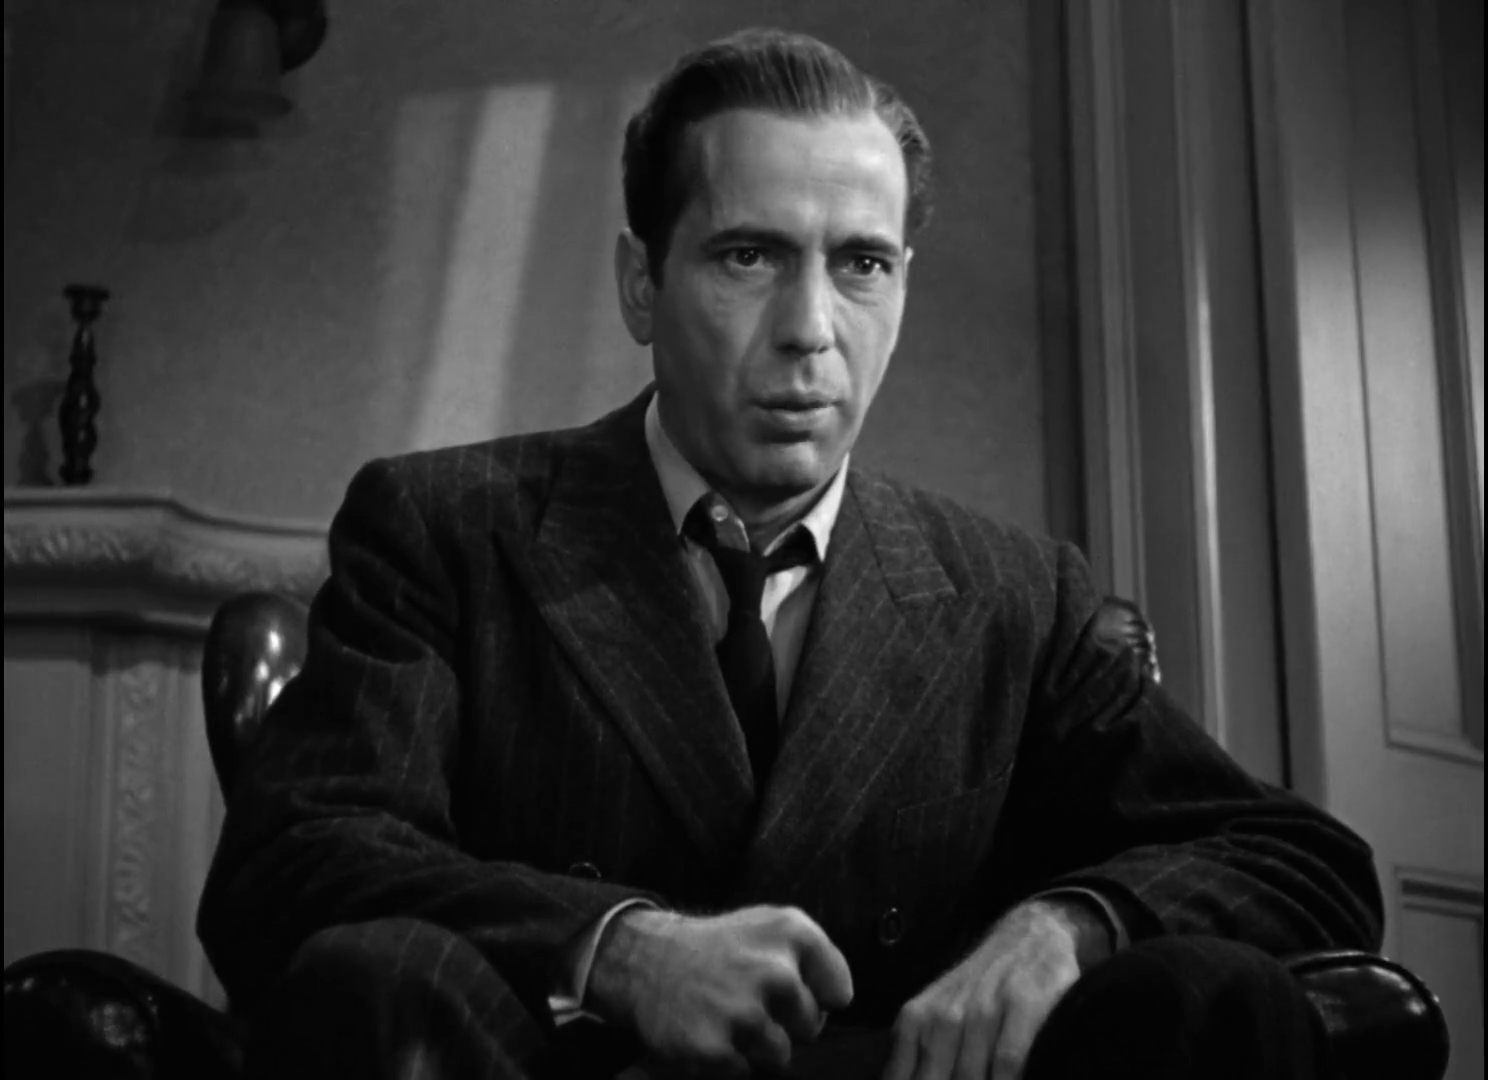 Humphrey Bogart dans The maltese falcon  (Le faucon maltais, 1941) de John Huston